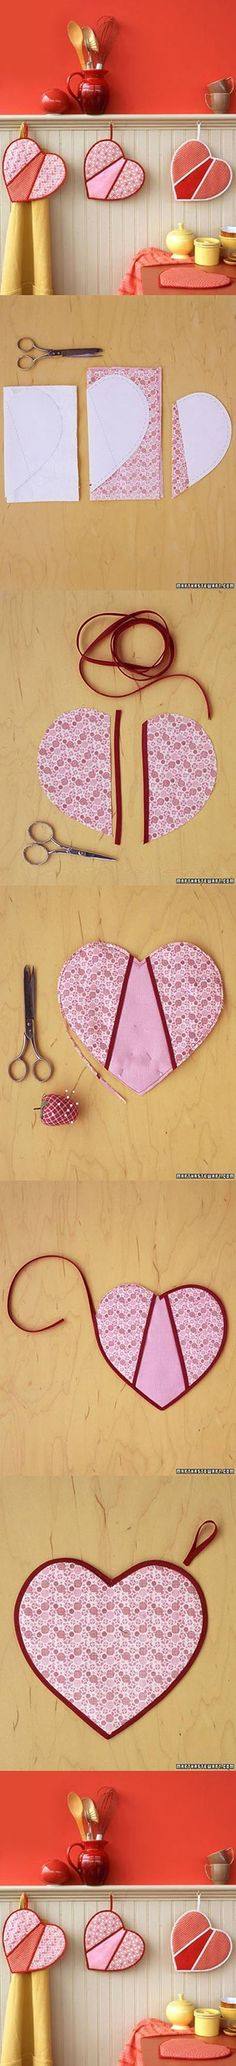 So Lovely Heart Craft | DIY & Crafts Tutorials